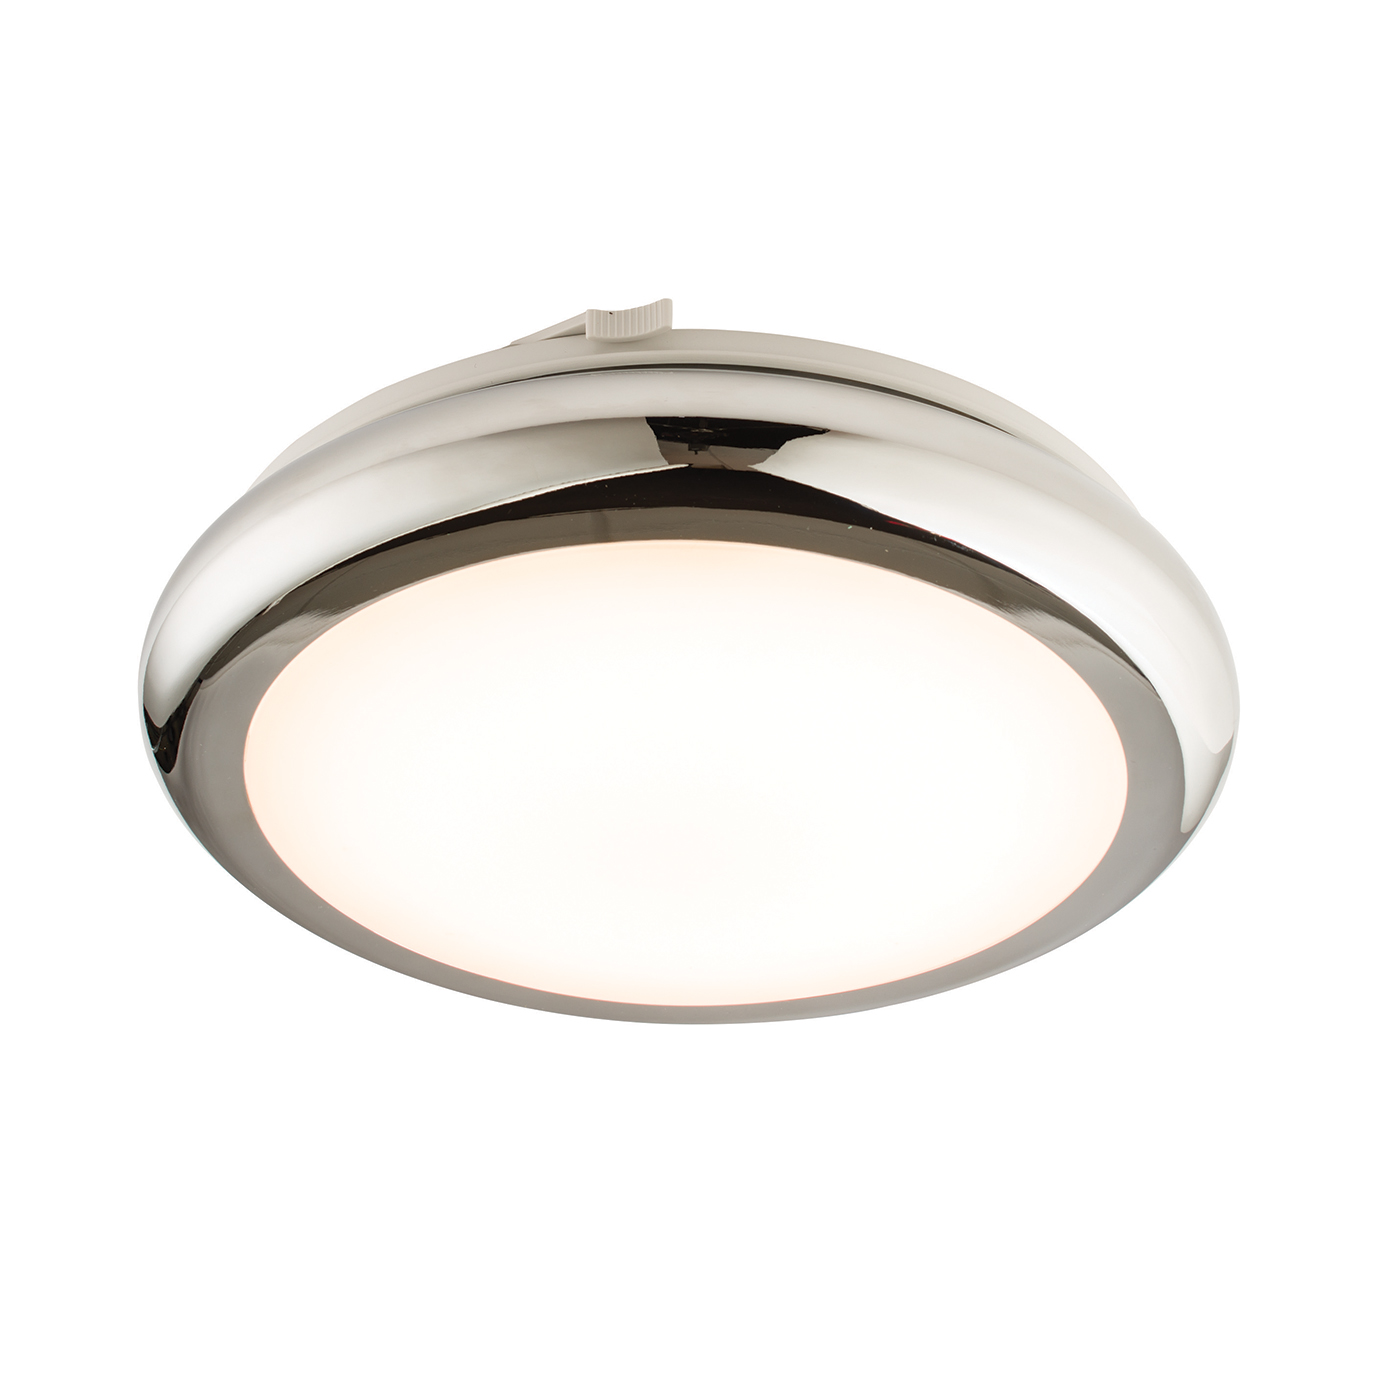 Endon Sigma LED 290mm flush bathroom ceiling light IP44 8W chrome polypropylene Thumbnail 1